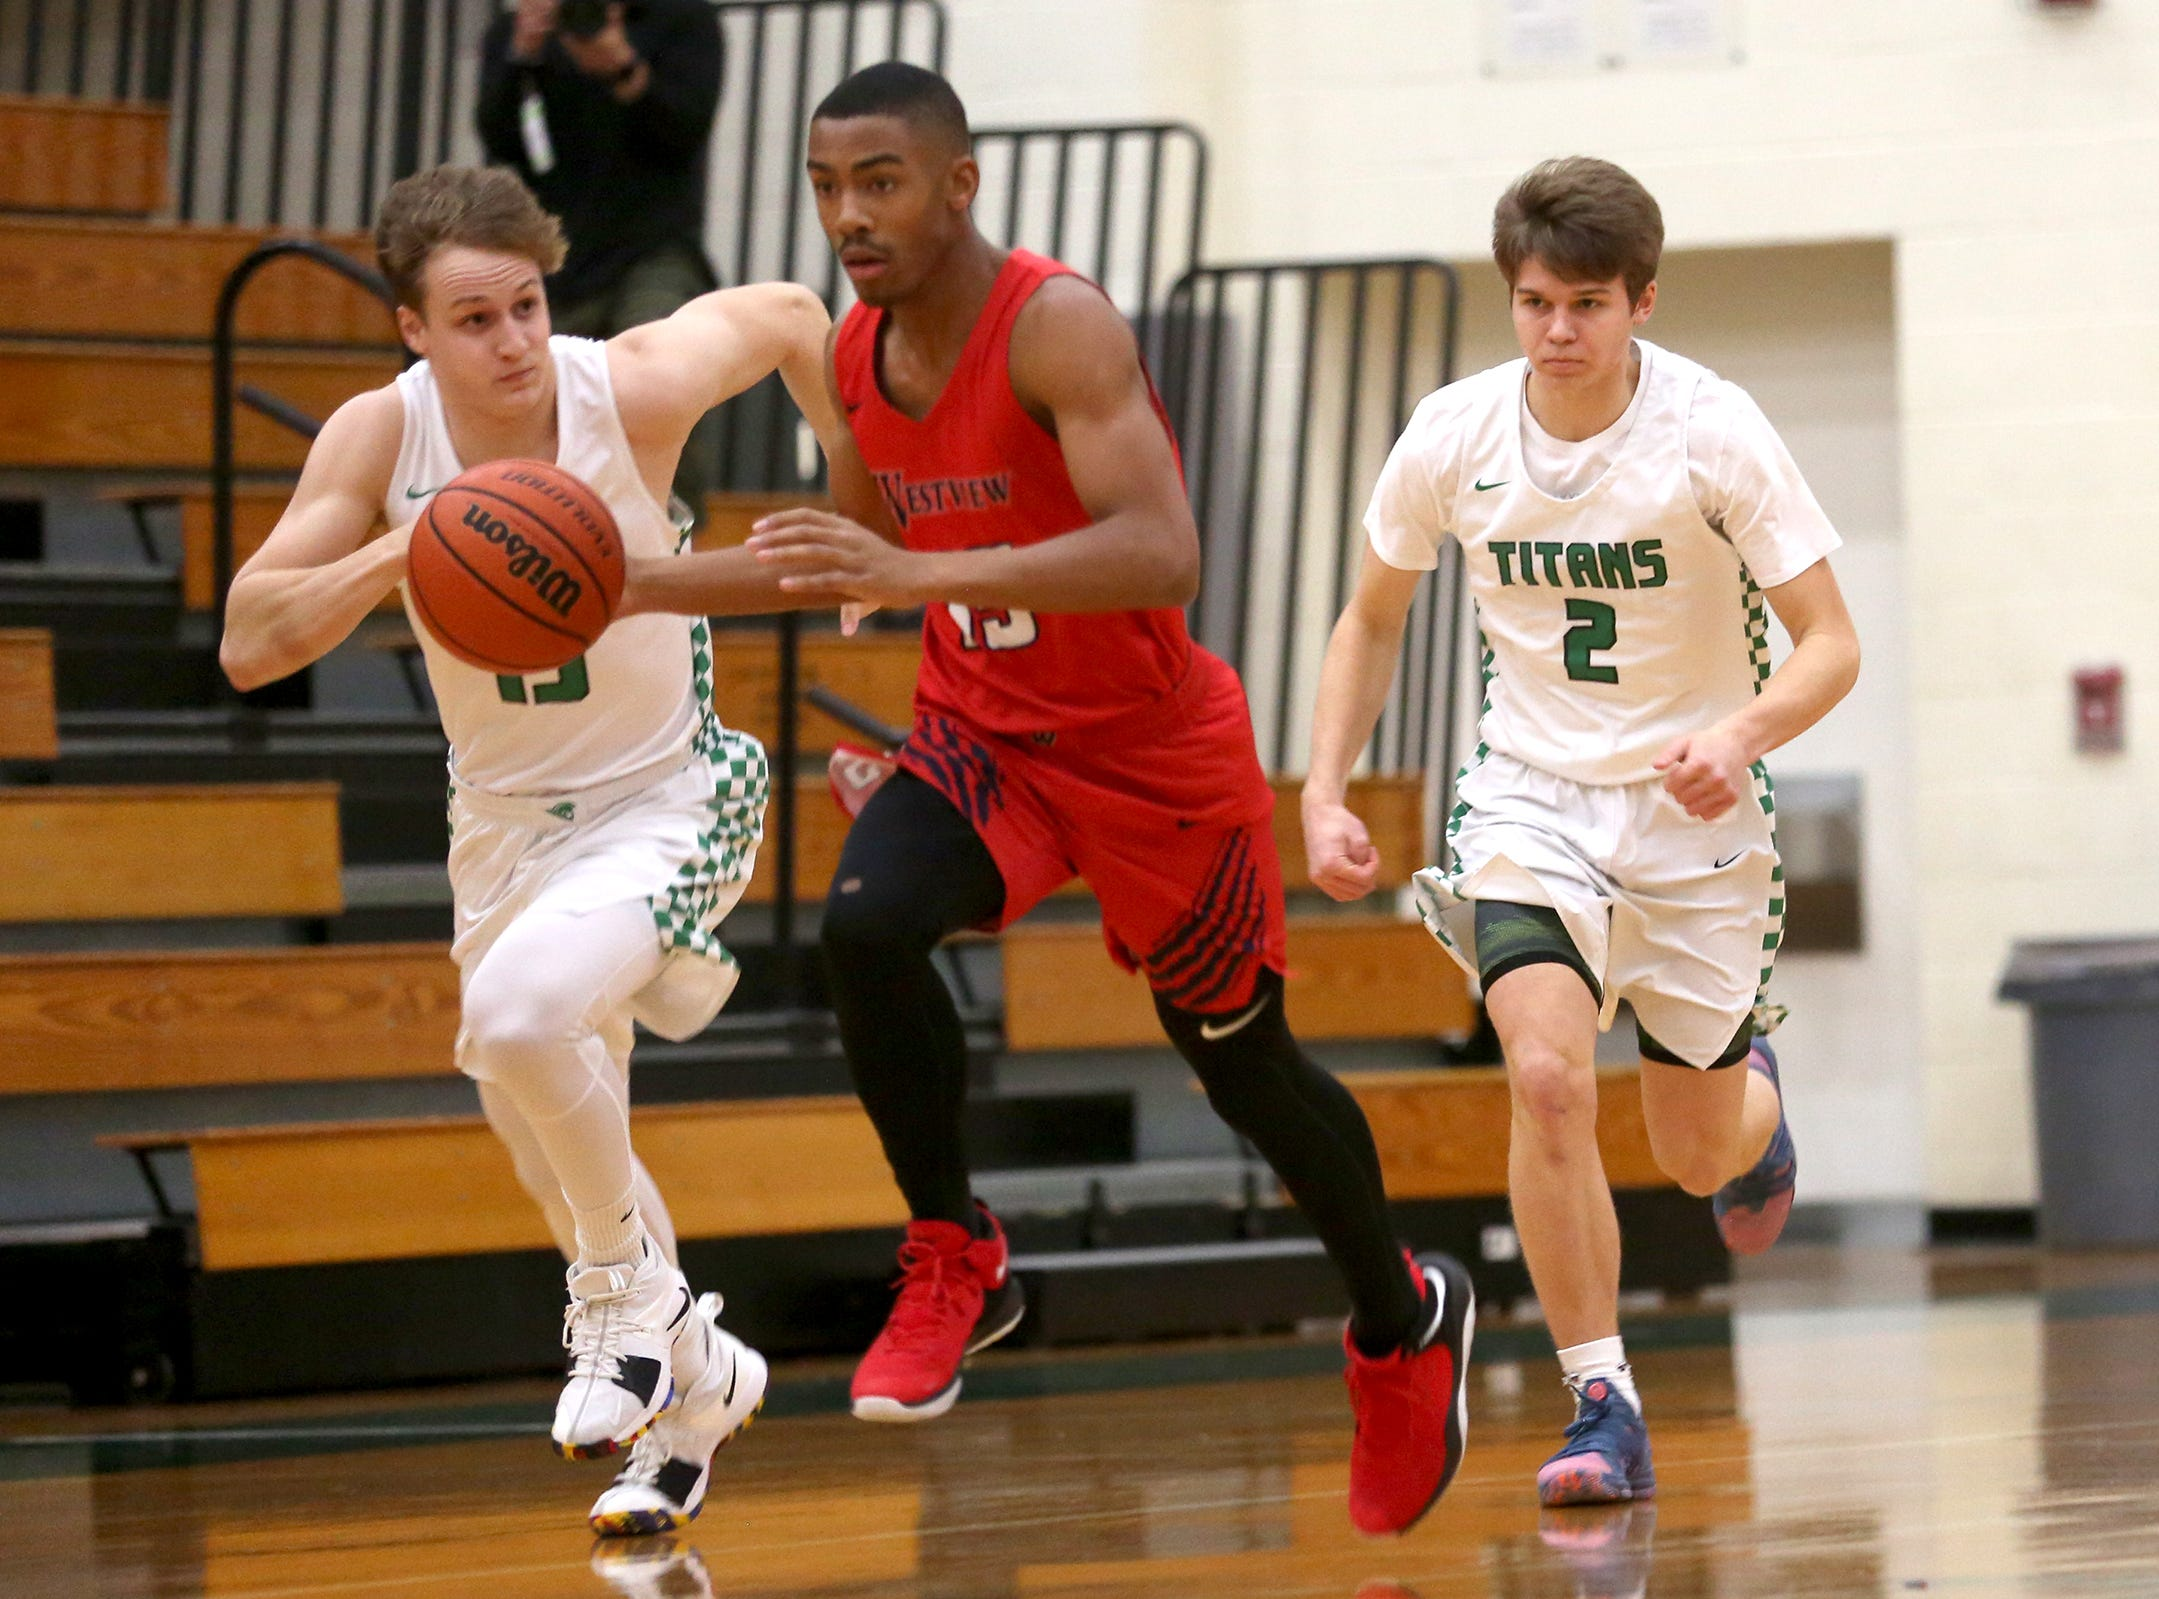 Westview's Wayne Jamison (15) protects the ball from West Salem defenders during the West Salem vs. Westview 6A Boys Basketball State Championships first round at West Salem High School in Salem on Tuesday, Feb. 26, 2019.